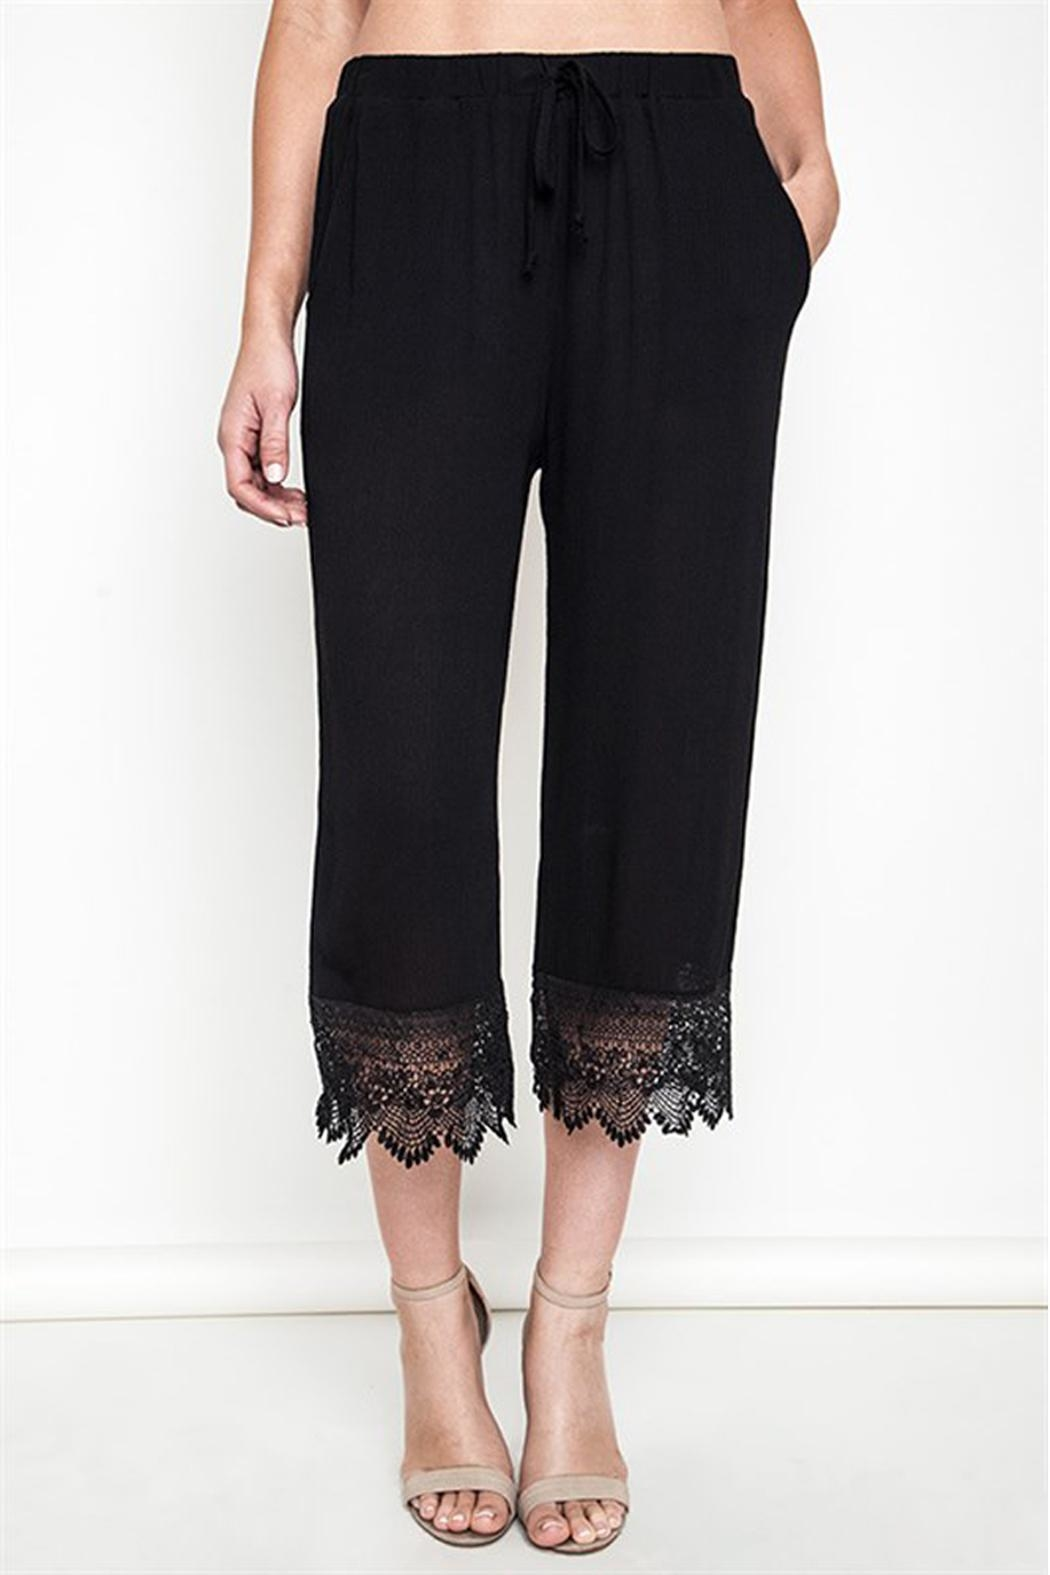 Umgee USA Lace Capri Pants - Front Cropped Image